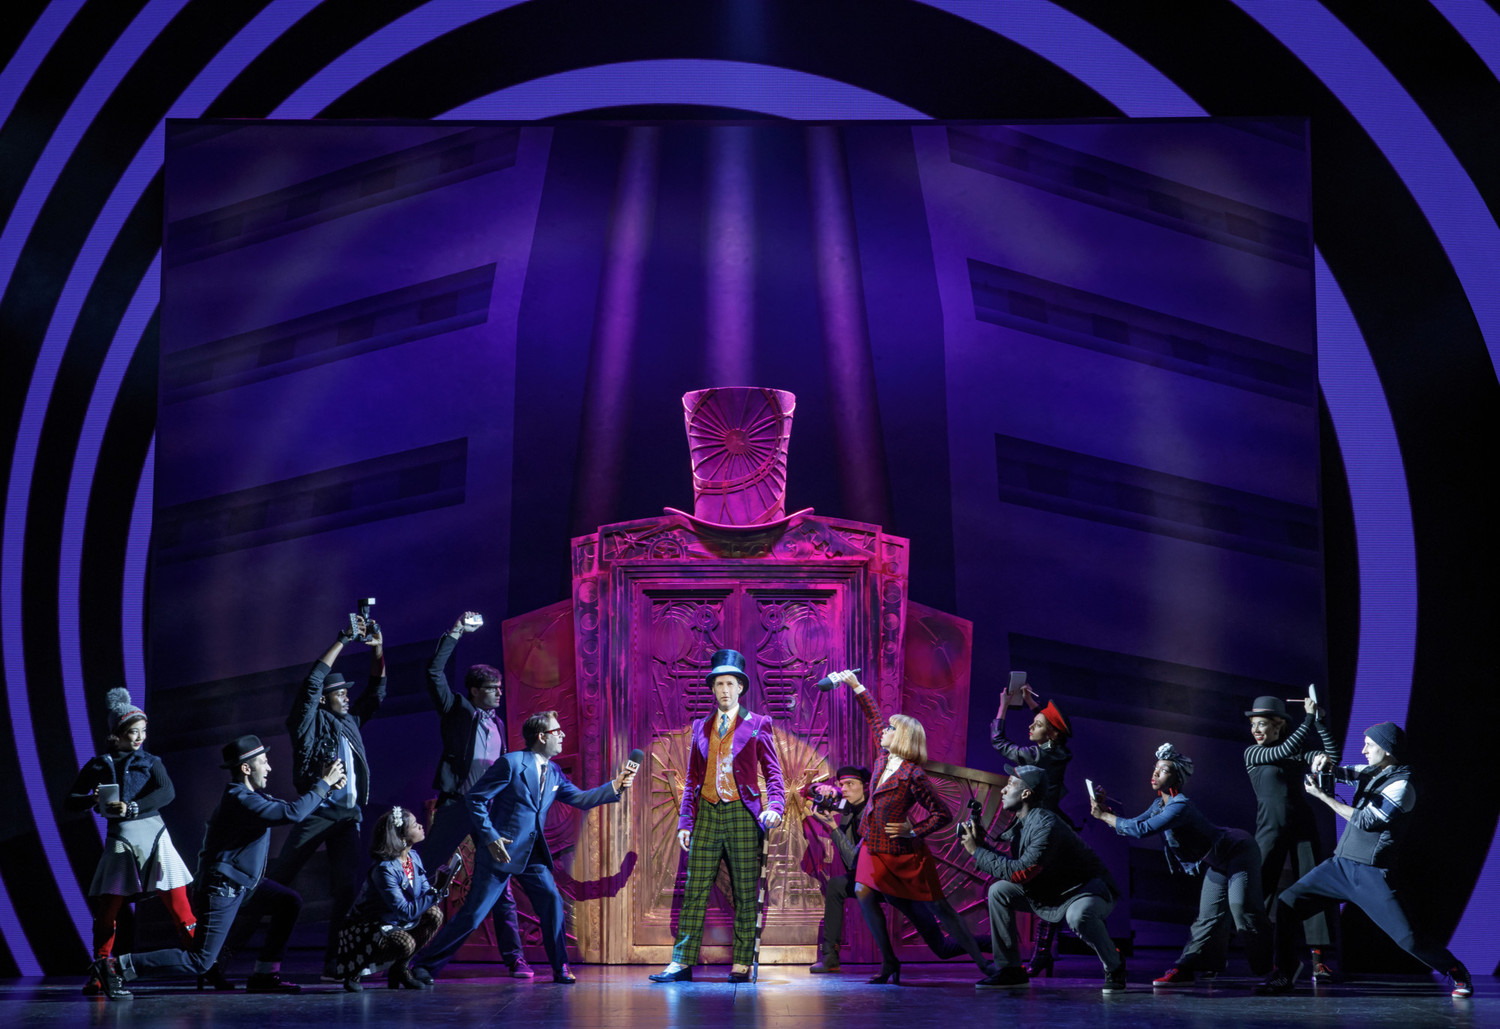 BWW Review: Willy Wonka Re-Invented for the 21st Century